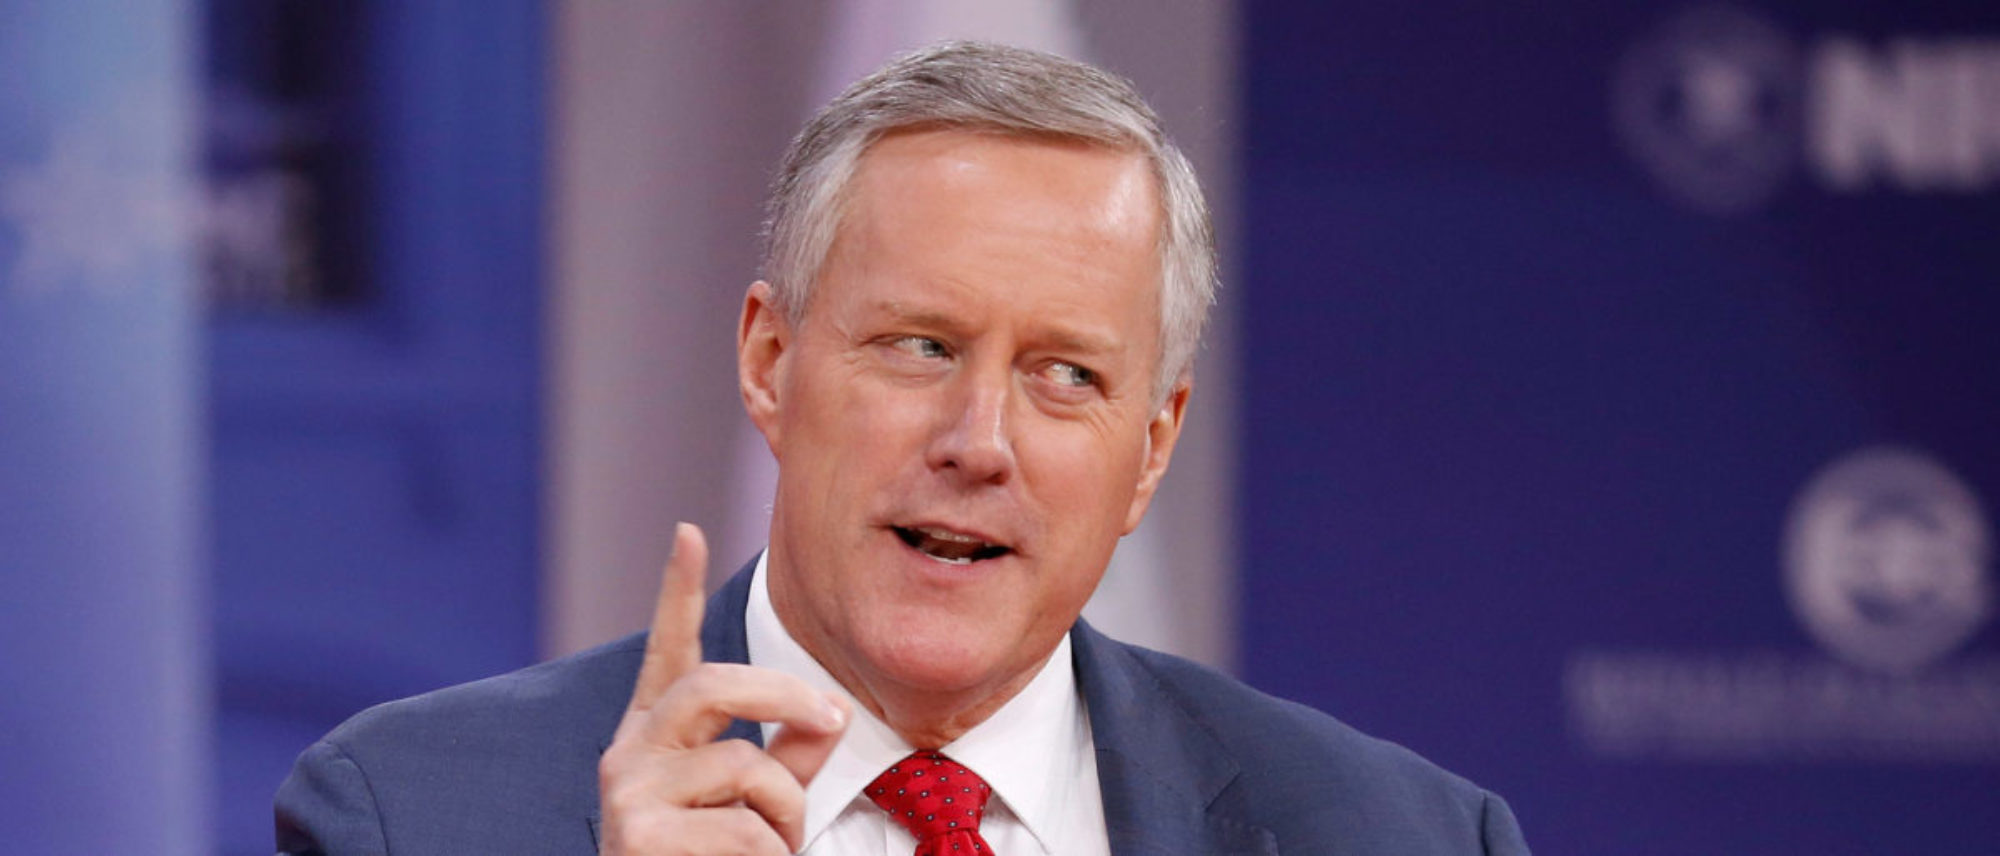 Rep. Mark Meadows (R-NC) speaks at the Conservative Political Action Conference (CPAC) at National Harbour, Maryland, U.S., February 23, 2018. REUTERS/Joshua Roberts